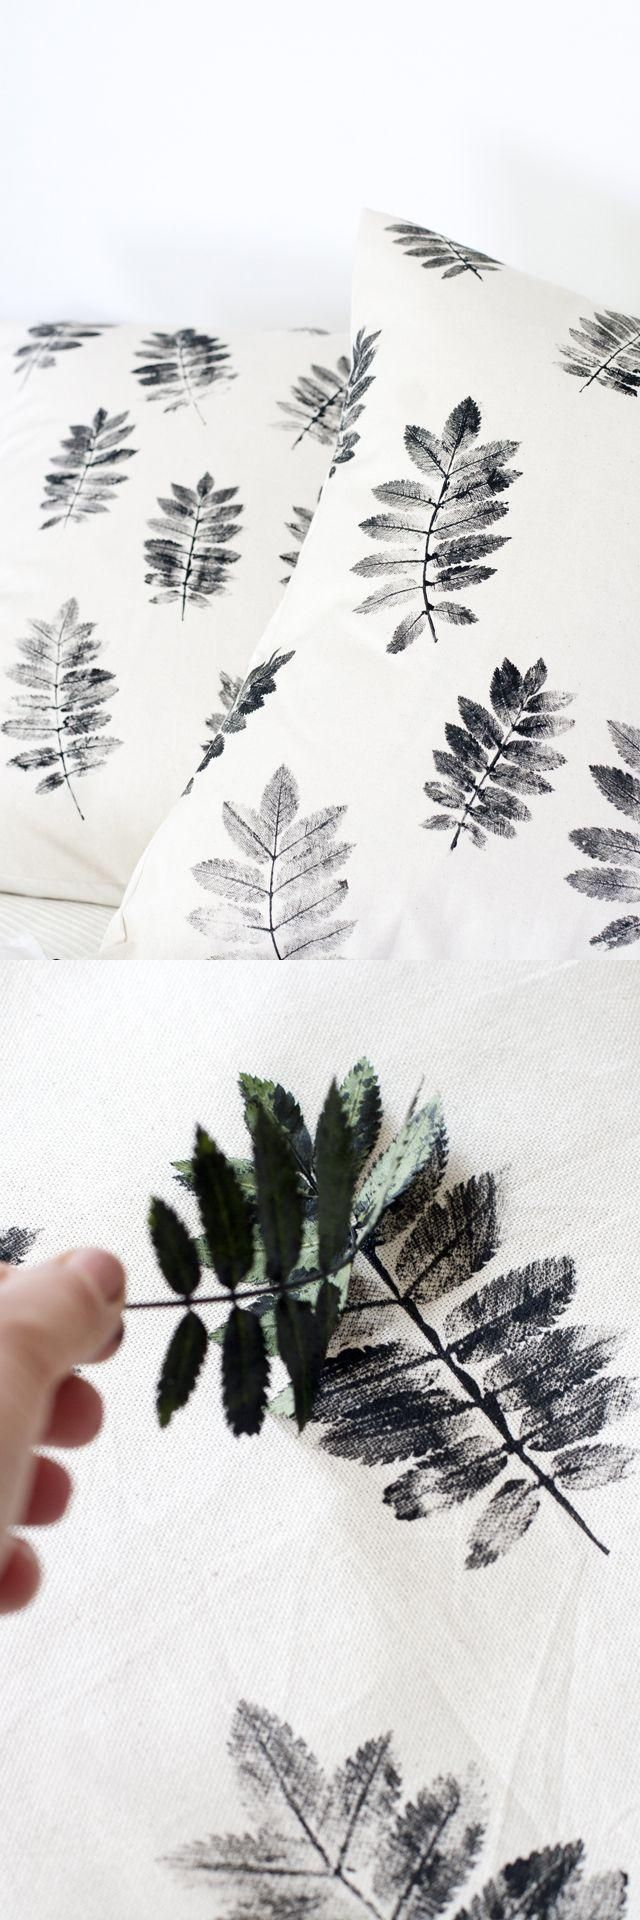 DIY, monoprint, design, printmaking, fabric, leaves, monochrome, pattern, repeat